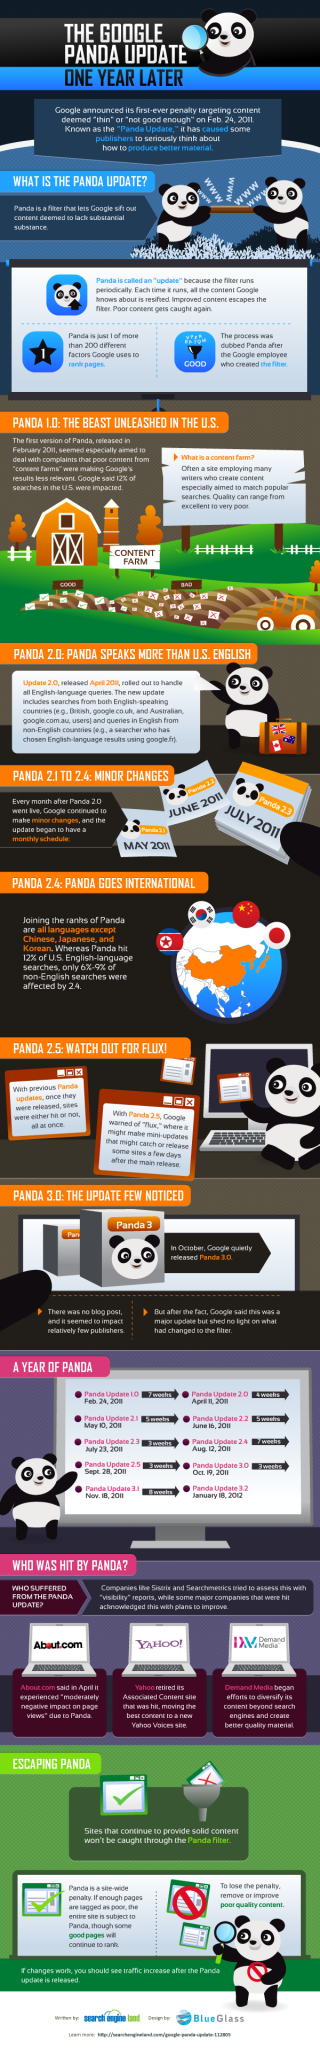 Google Panda Infographic from SearchEngineLand.com